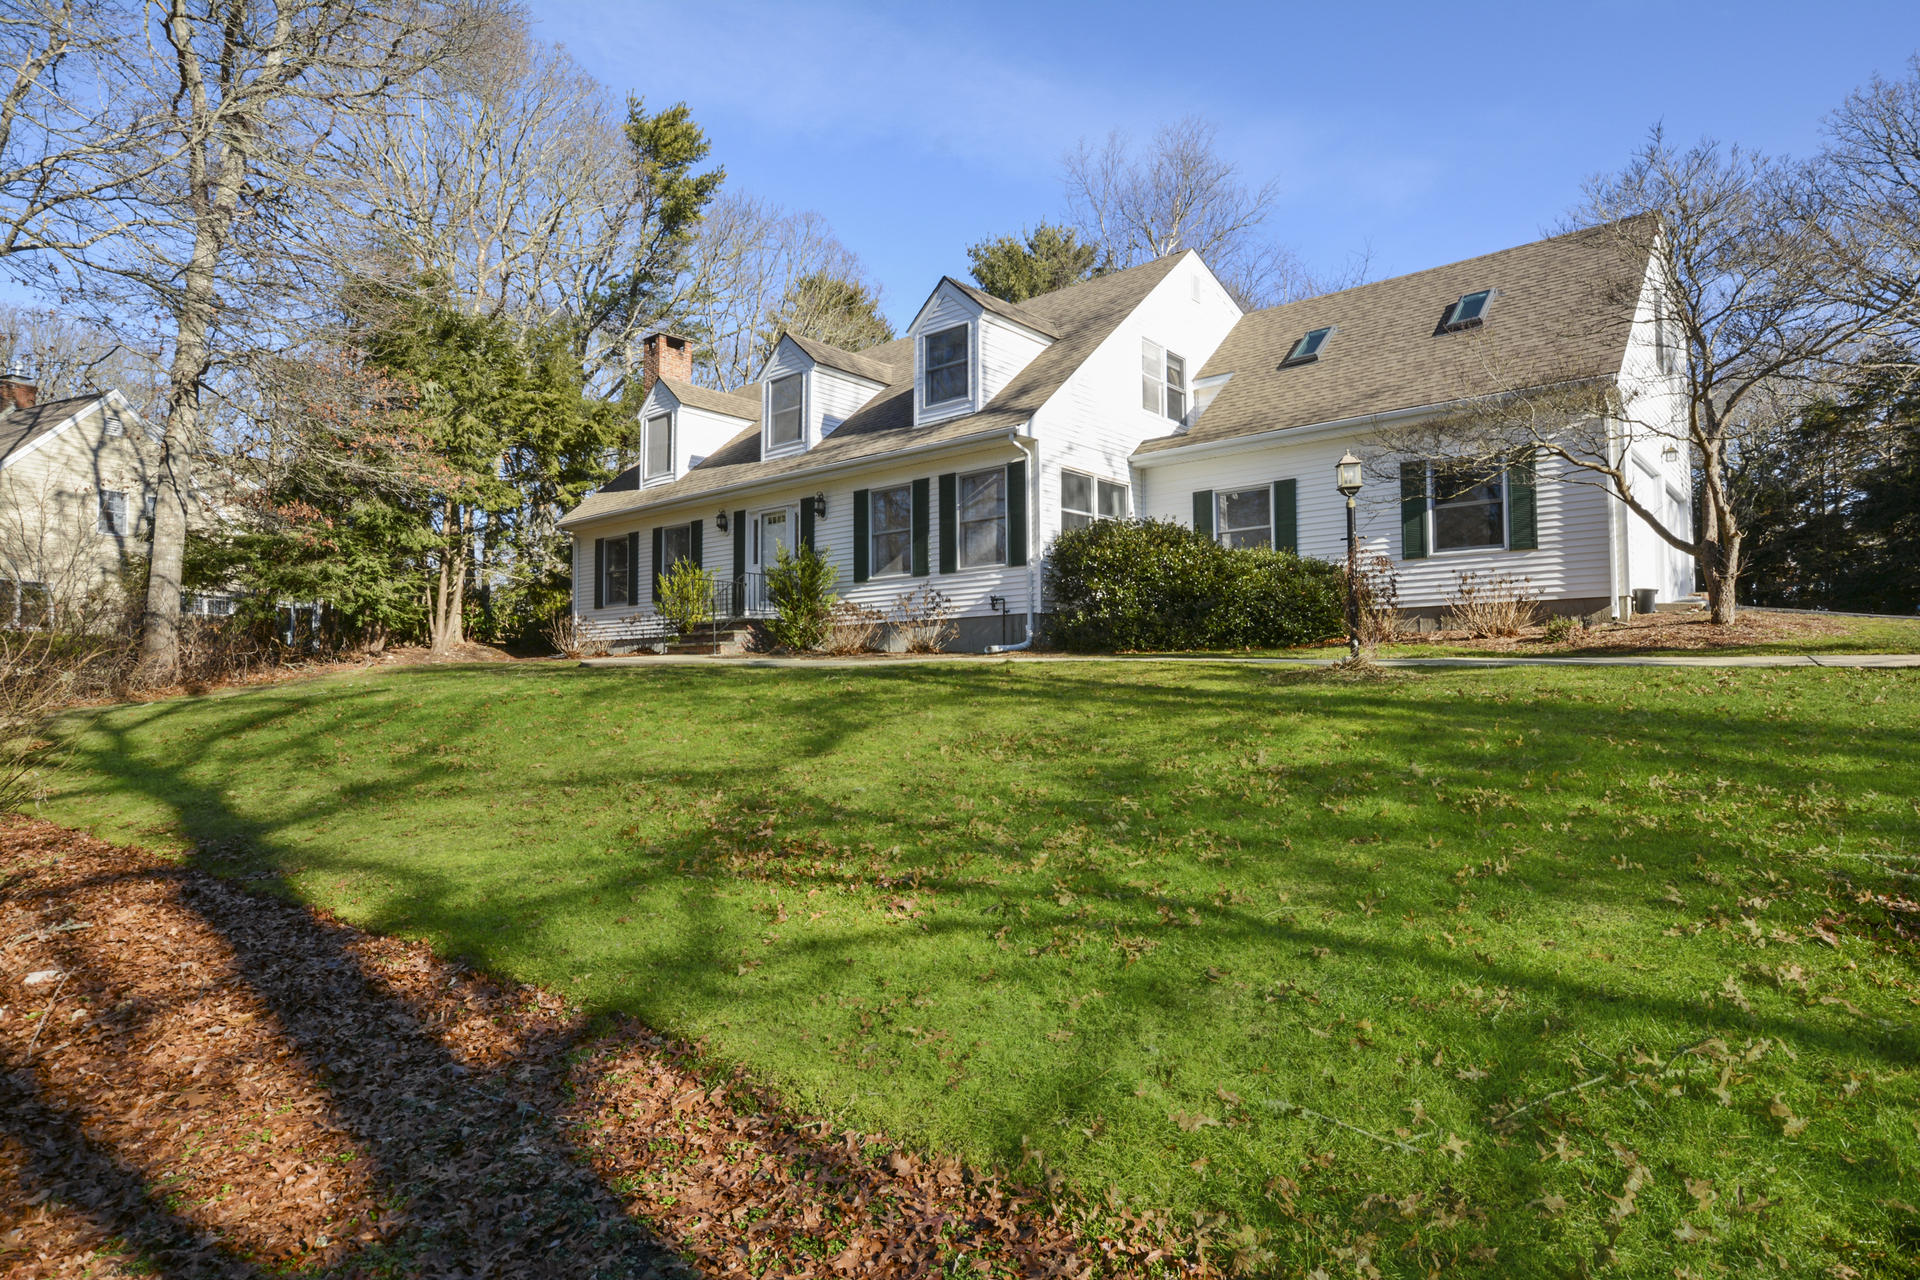 21 Rydal Mount Drive, Falmouth MA, 02540 details